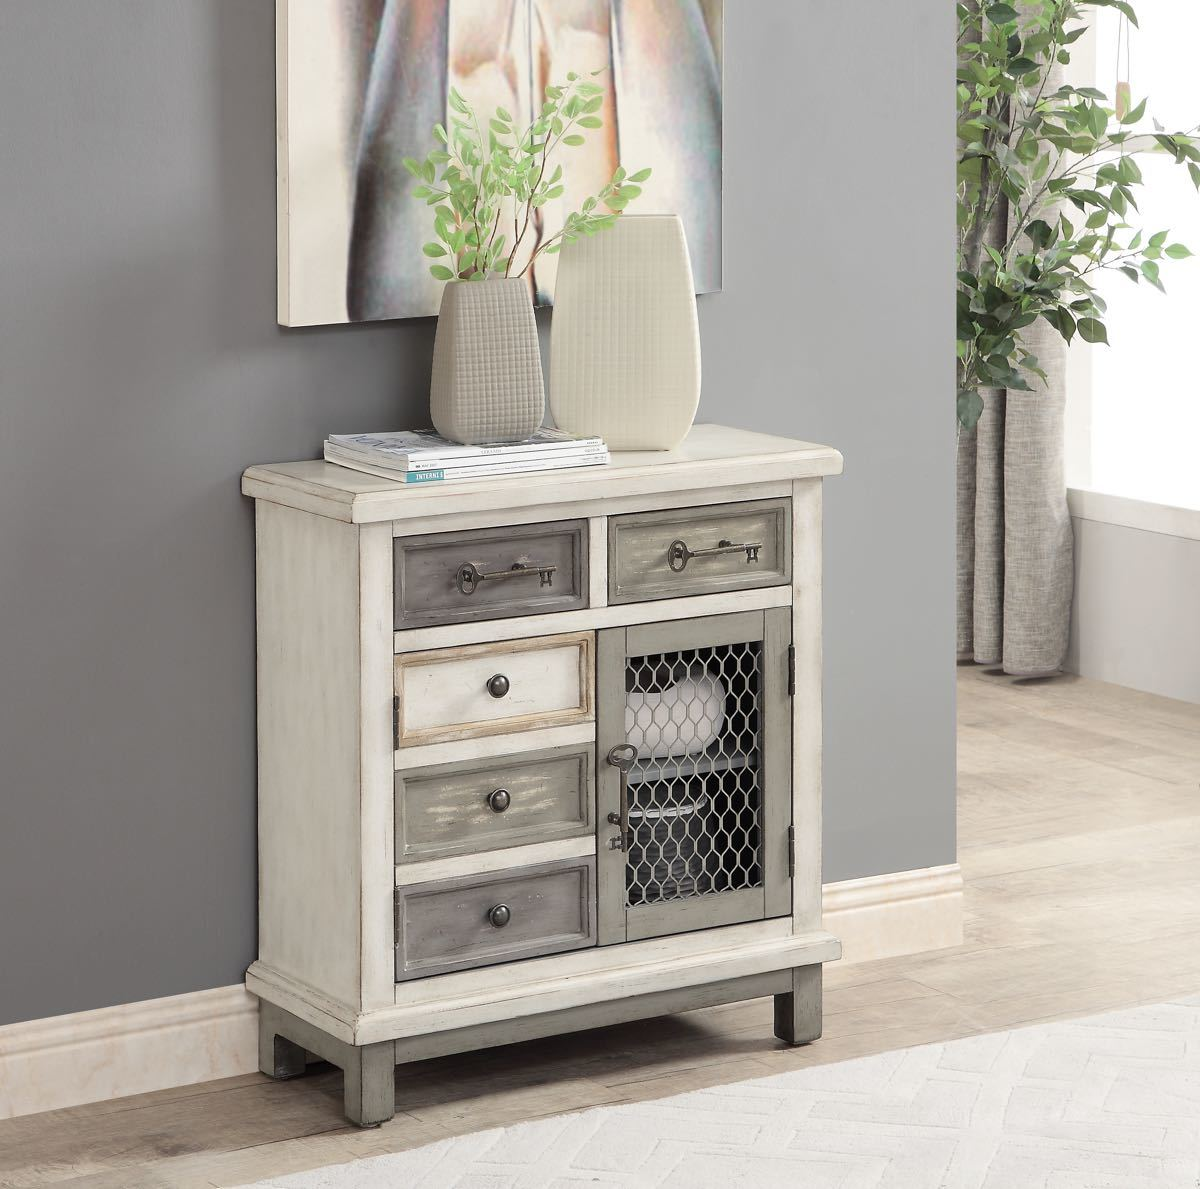 Keystone Multi Color Cabinet